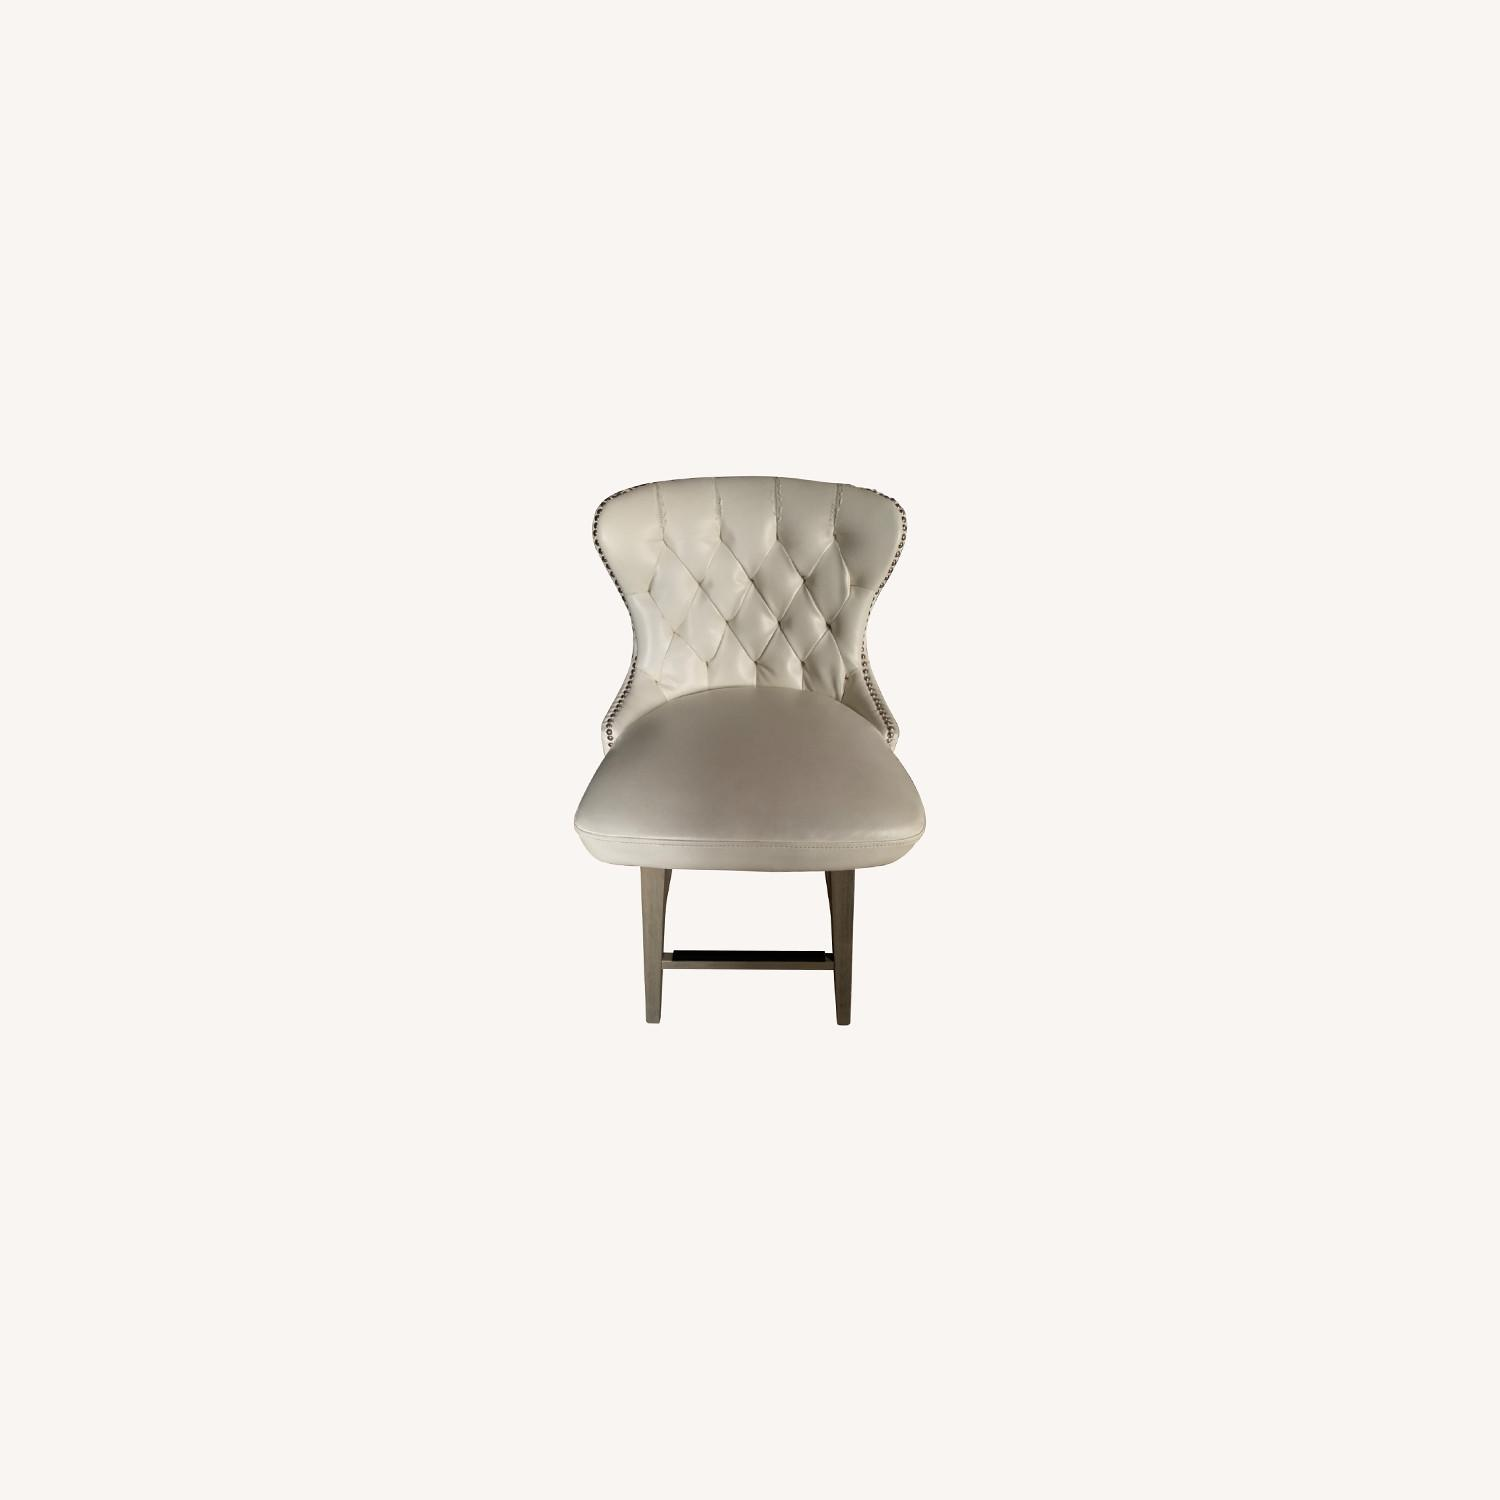 White Faux Leather Tufted Counter Chairs - image-0